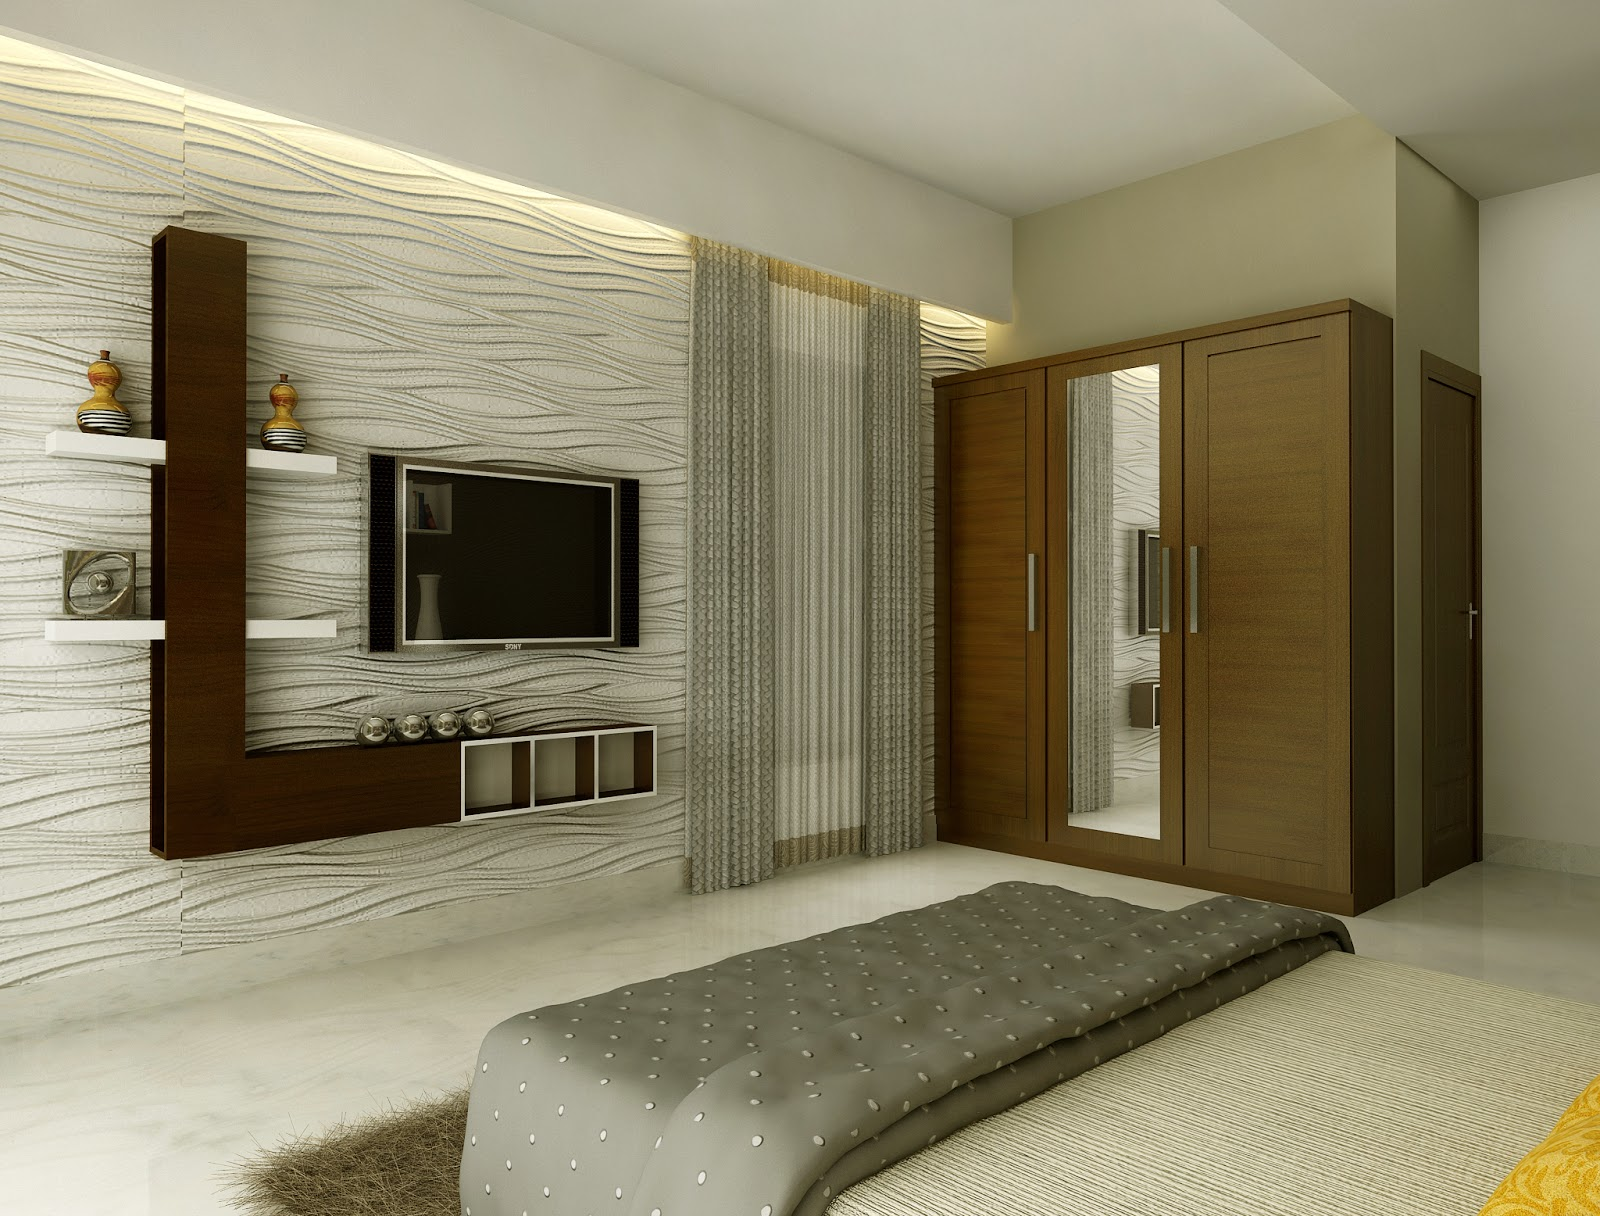 Small Indian Bedroom Interiorscukjatidesigncom. Bedroom design ideas in india